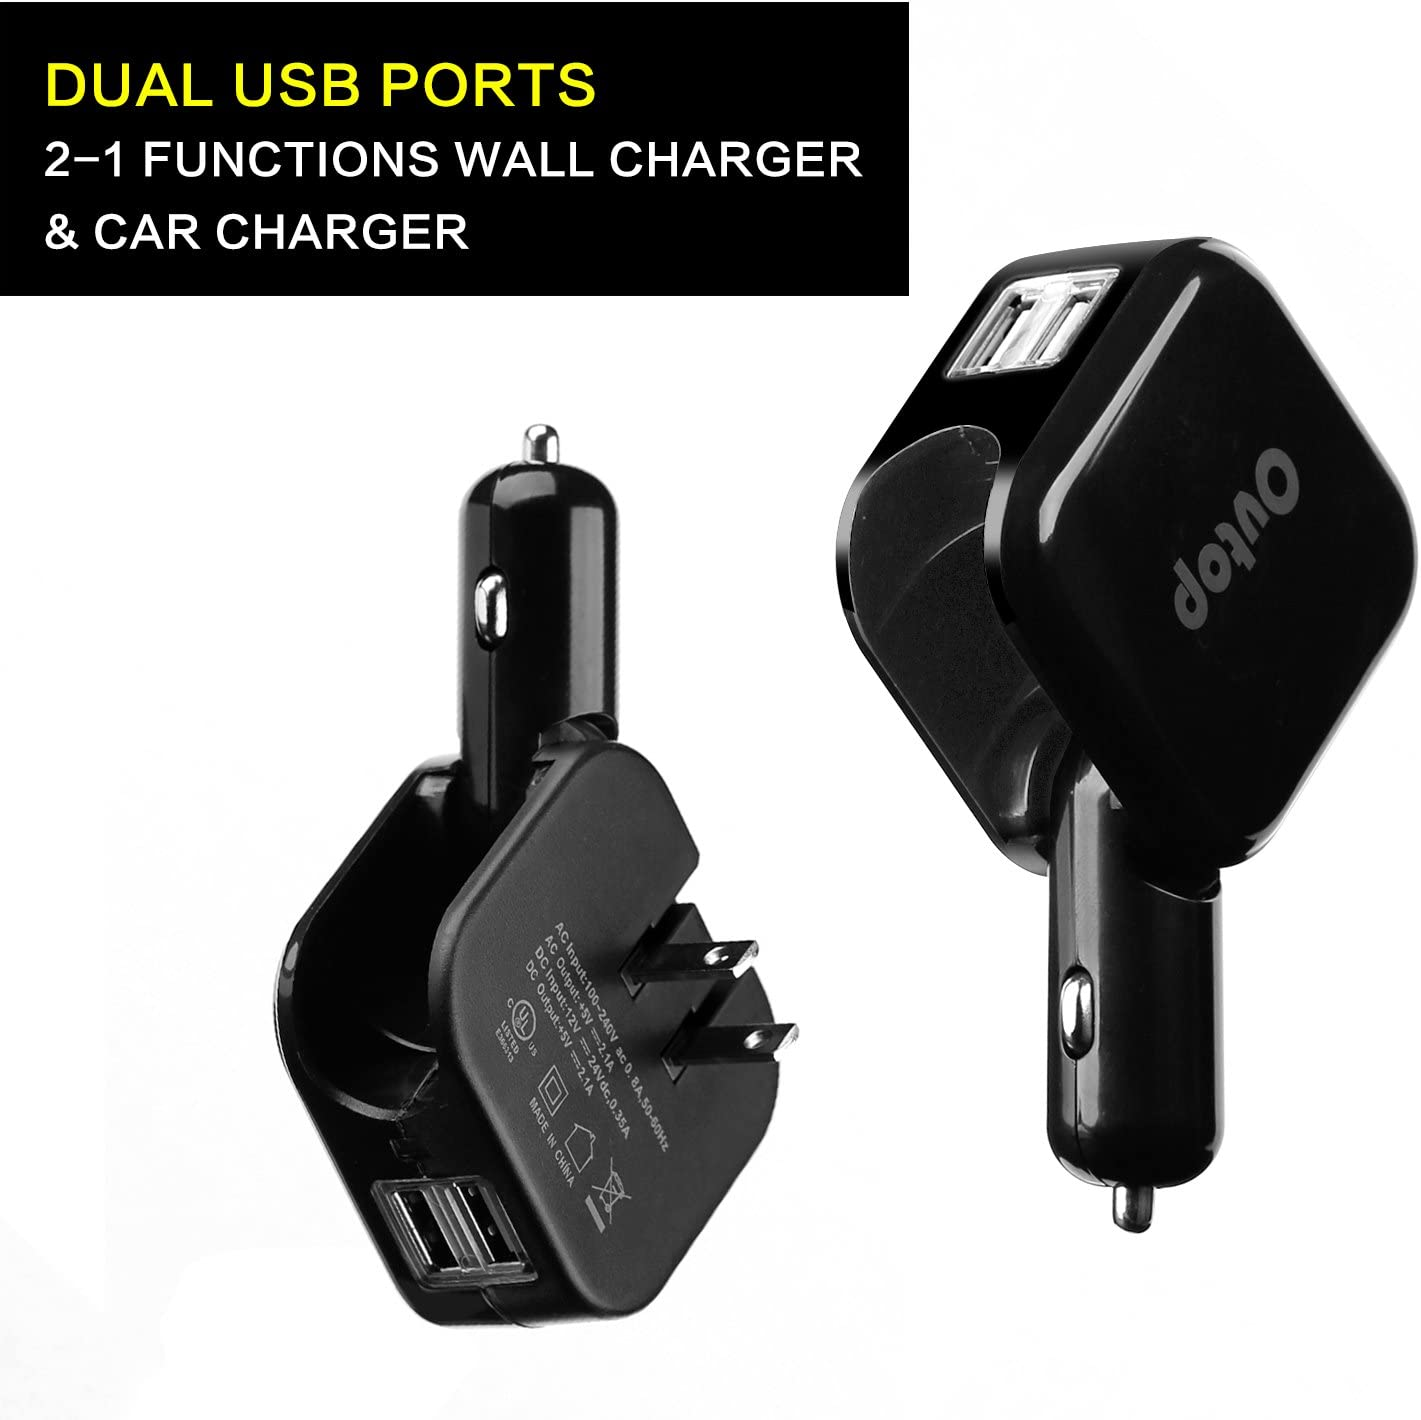 Nexus 6P Samsung Galaxy S9 S8 S7 S6 Edge Asiwo 3-Port USB Car Charger,Car Phone Smart Charger compatible iPhone X//8//8Plus 7 6S 6 Plus Mp3/&More Note 8 5 4 iPad